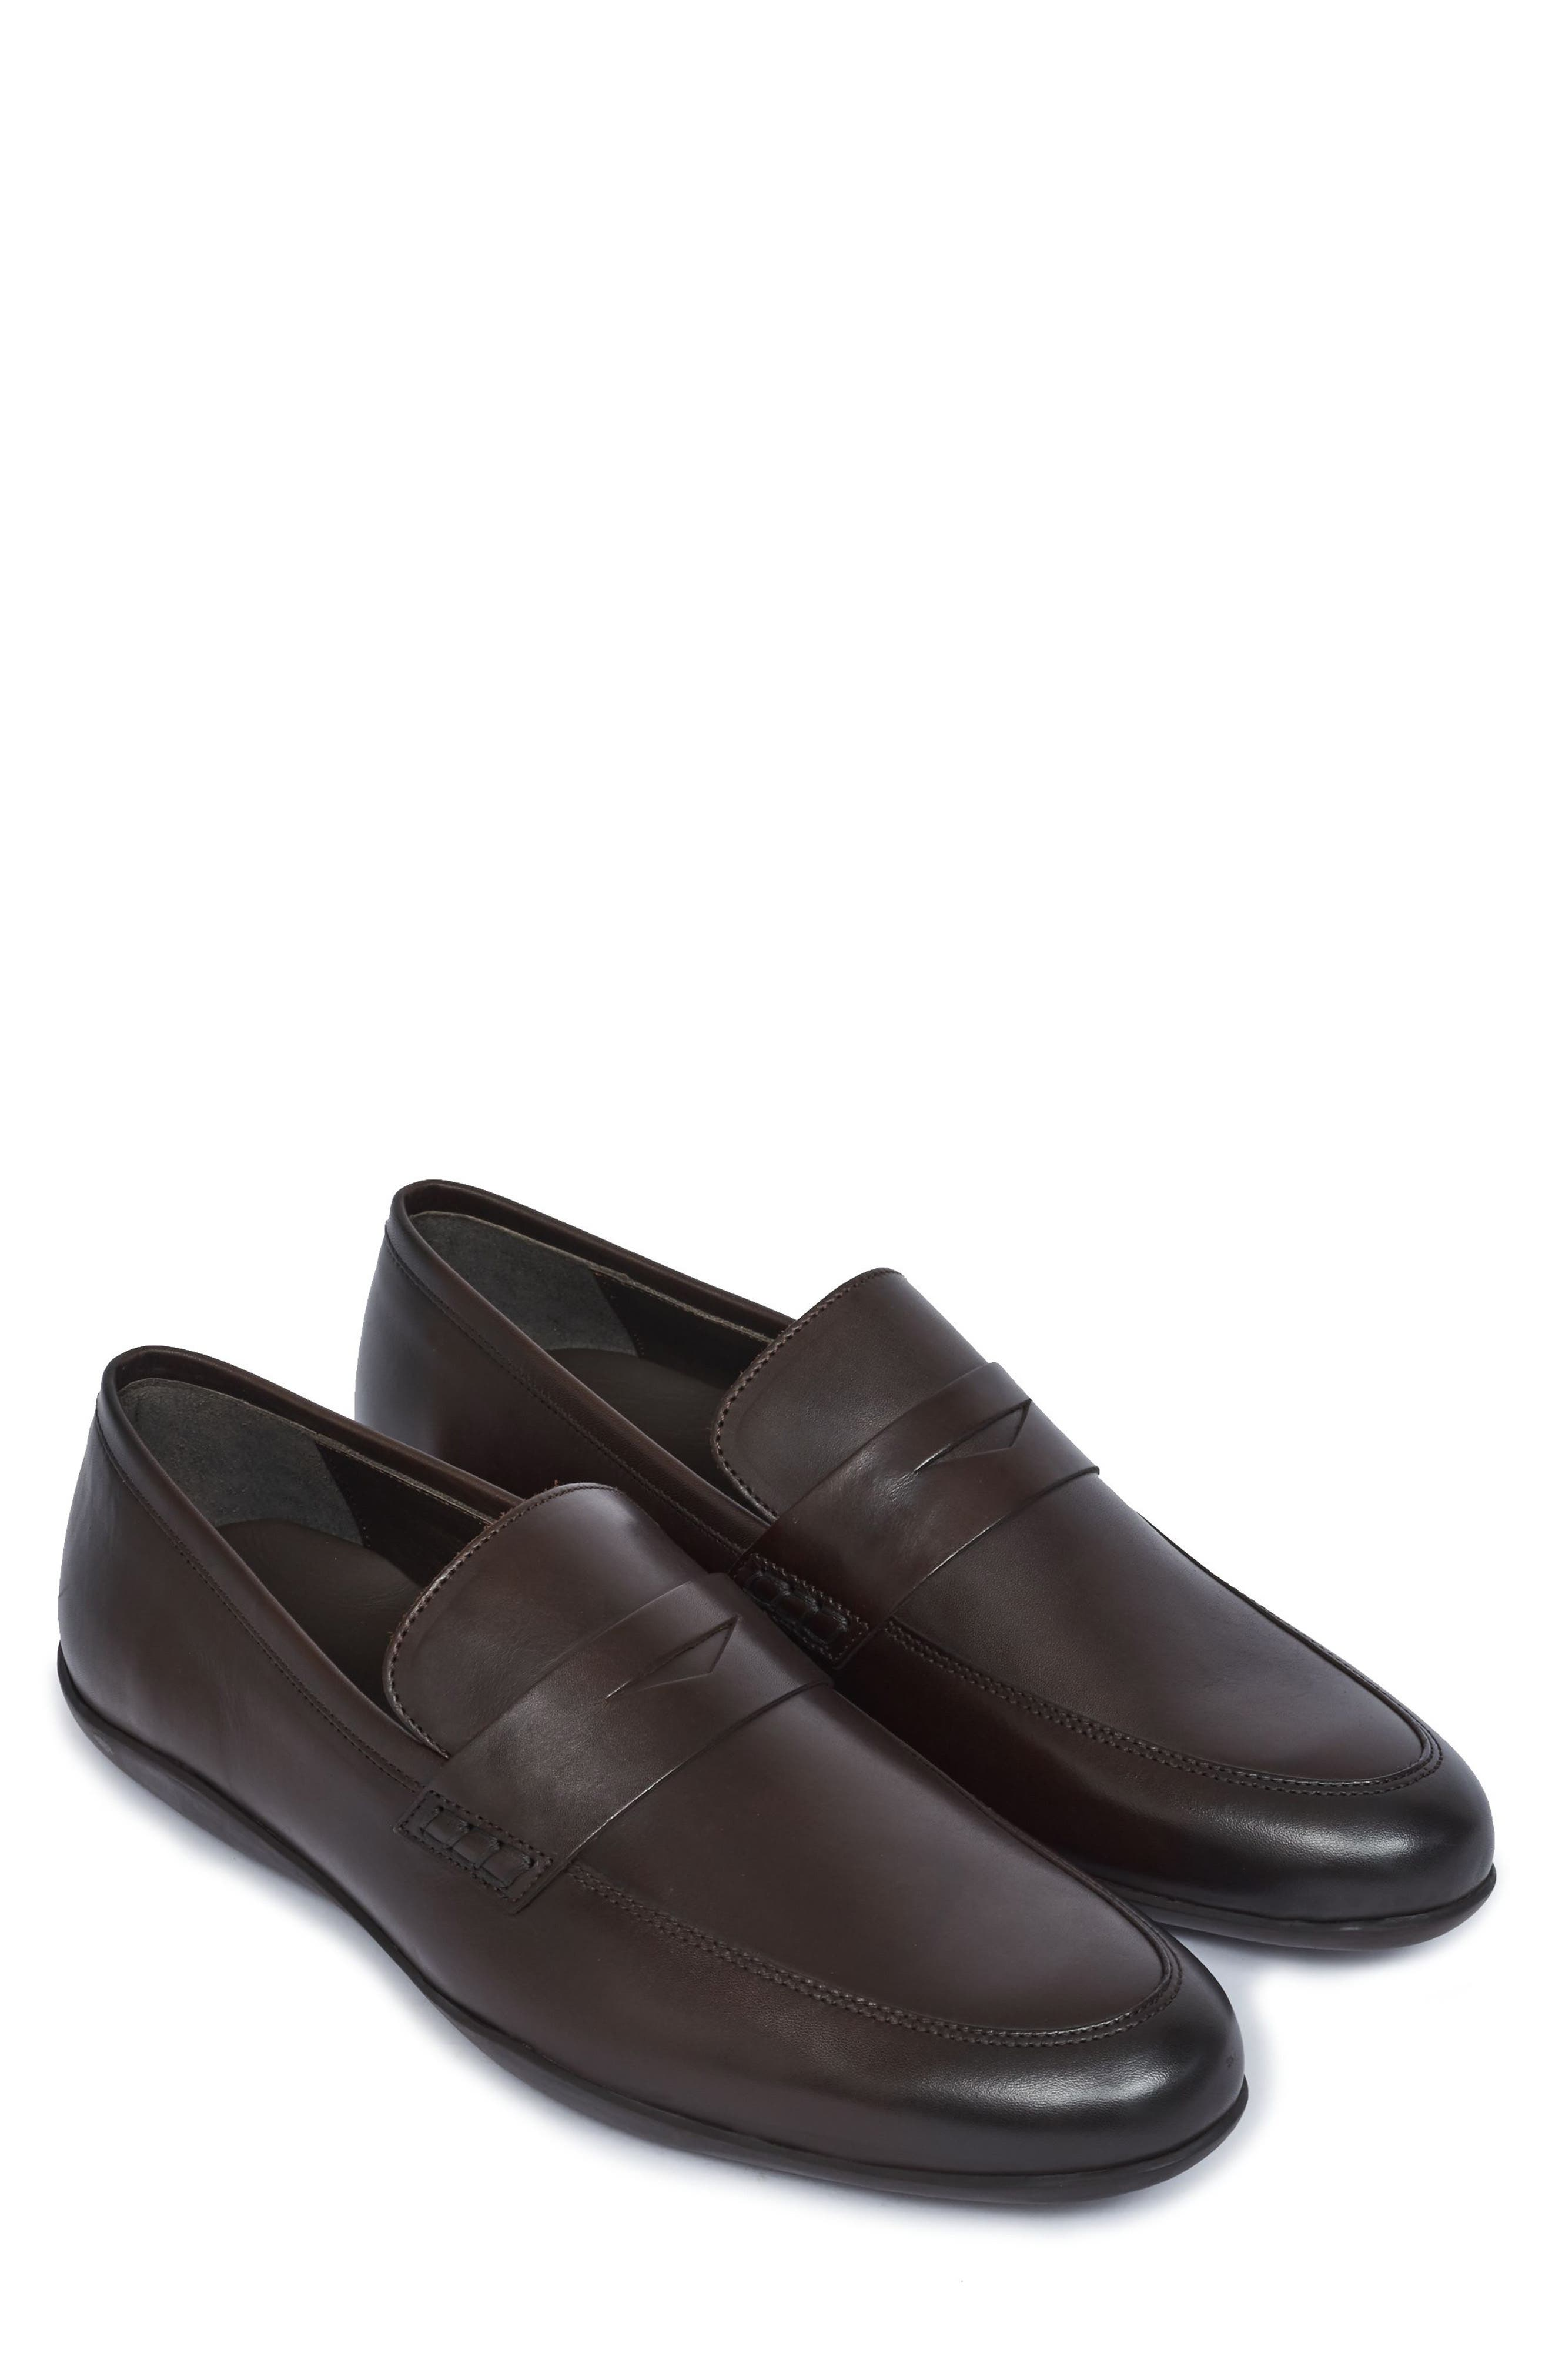 Harrys of London Downing Penny Loafer